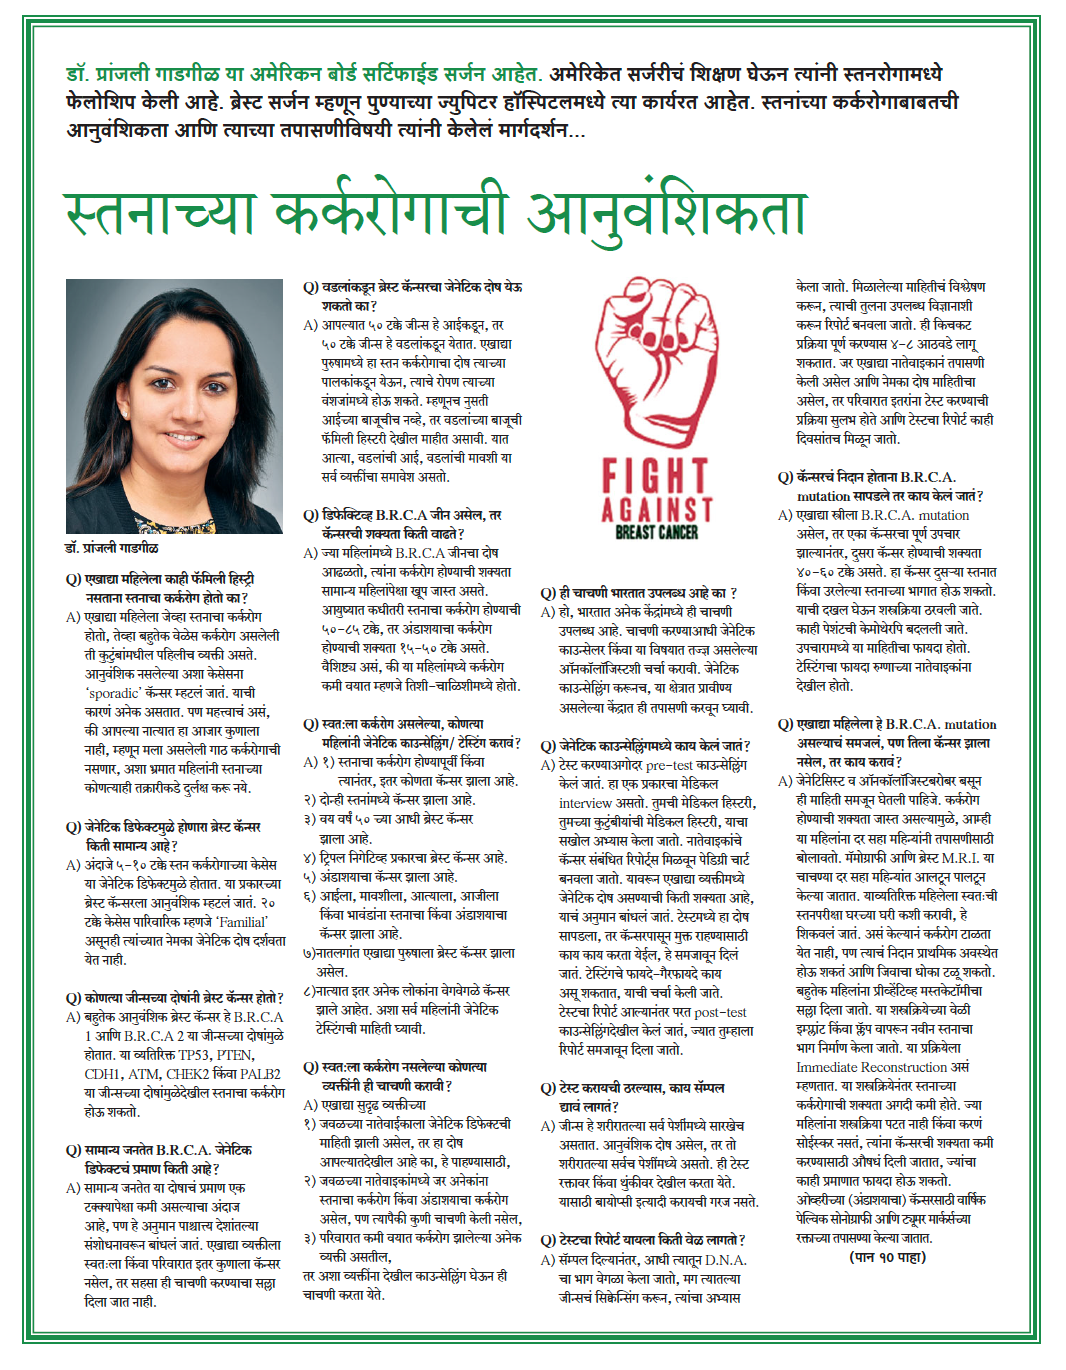 Dr Pranjali Gadgil's article on Hereditary Breast cancer